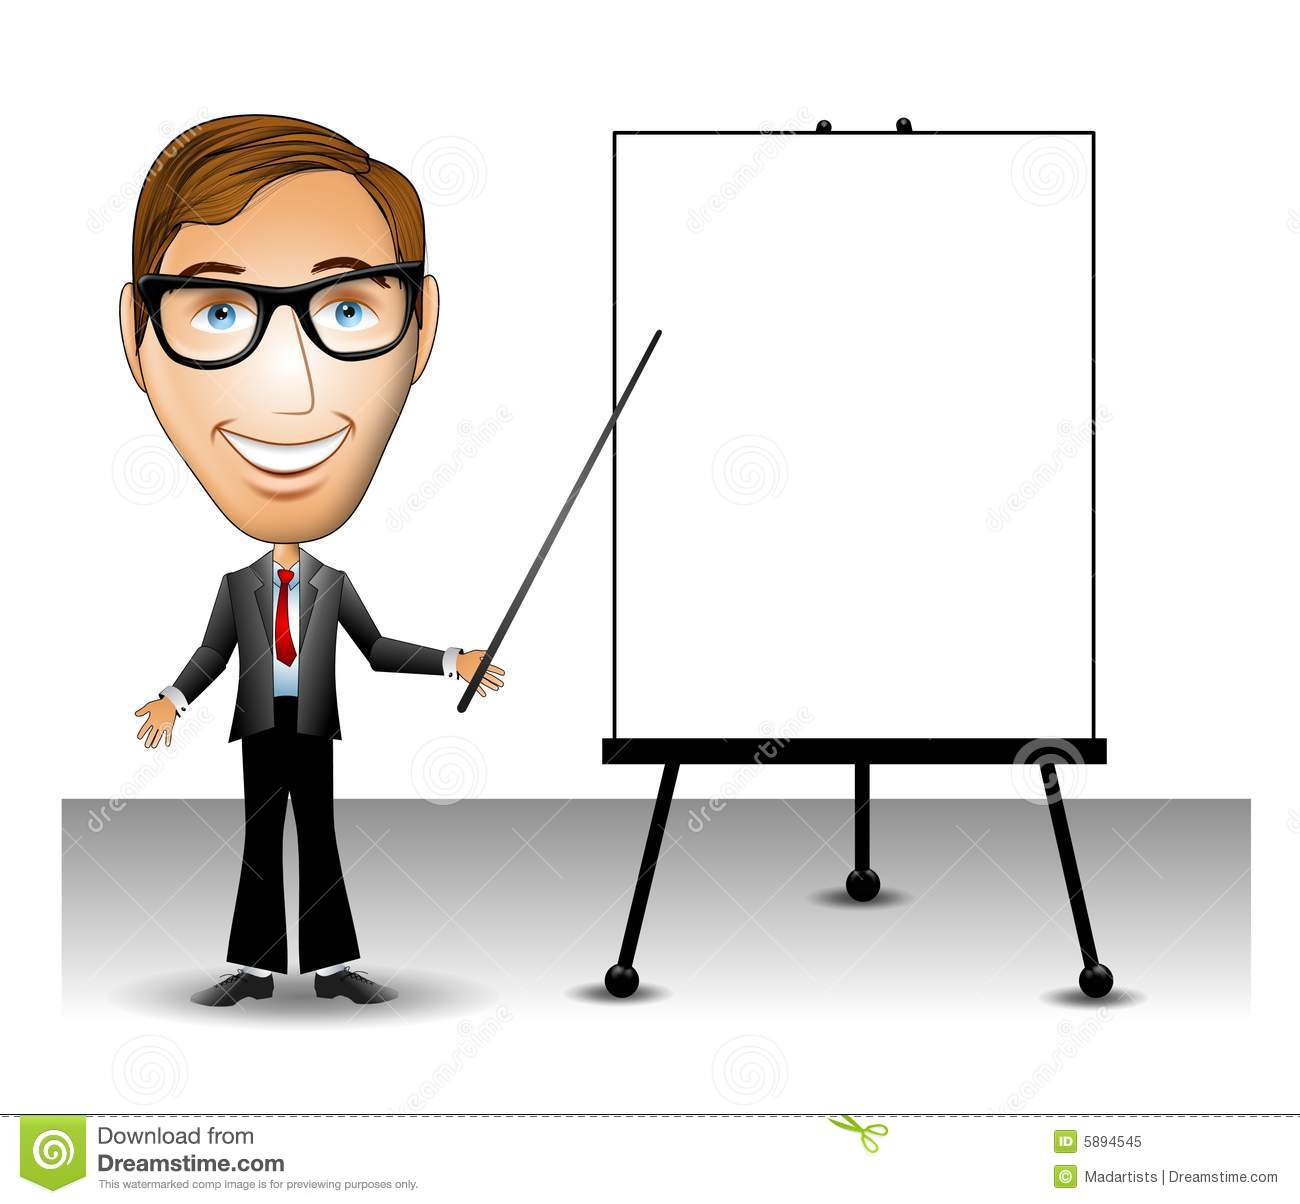 business-man-presenting-5894545.jpg